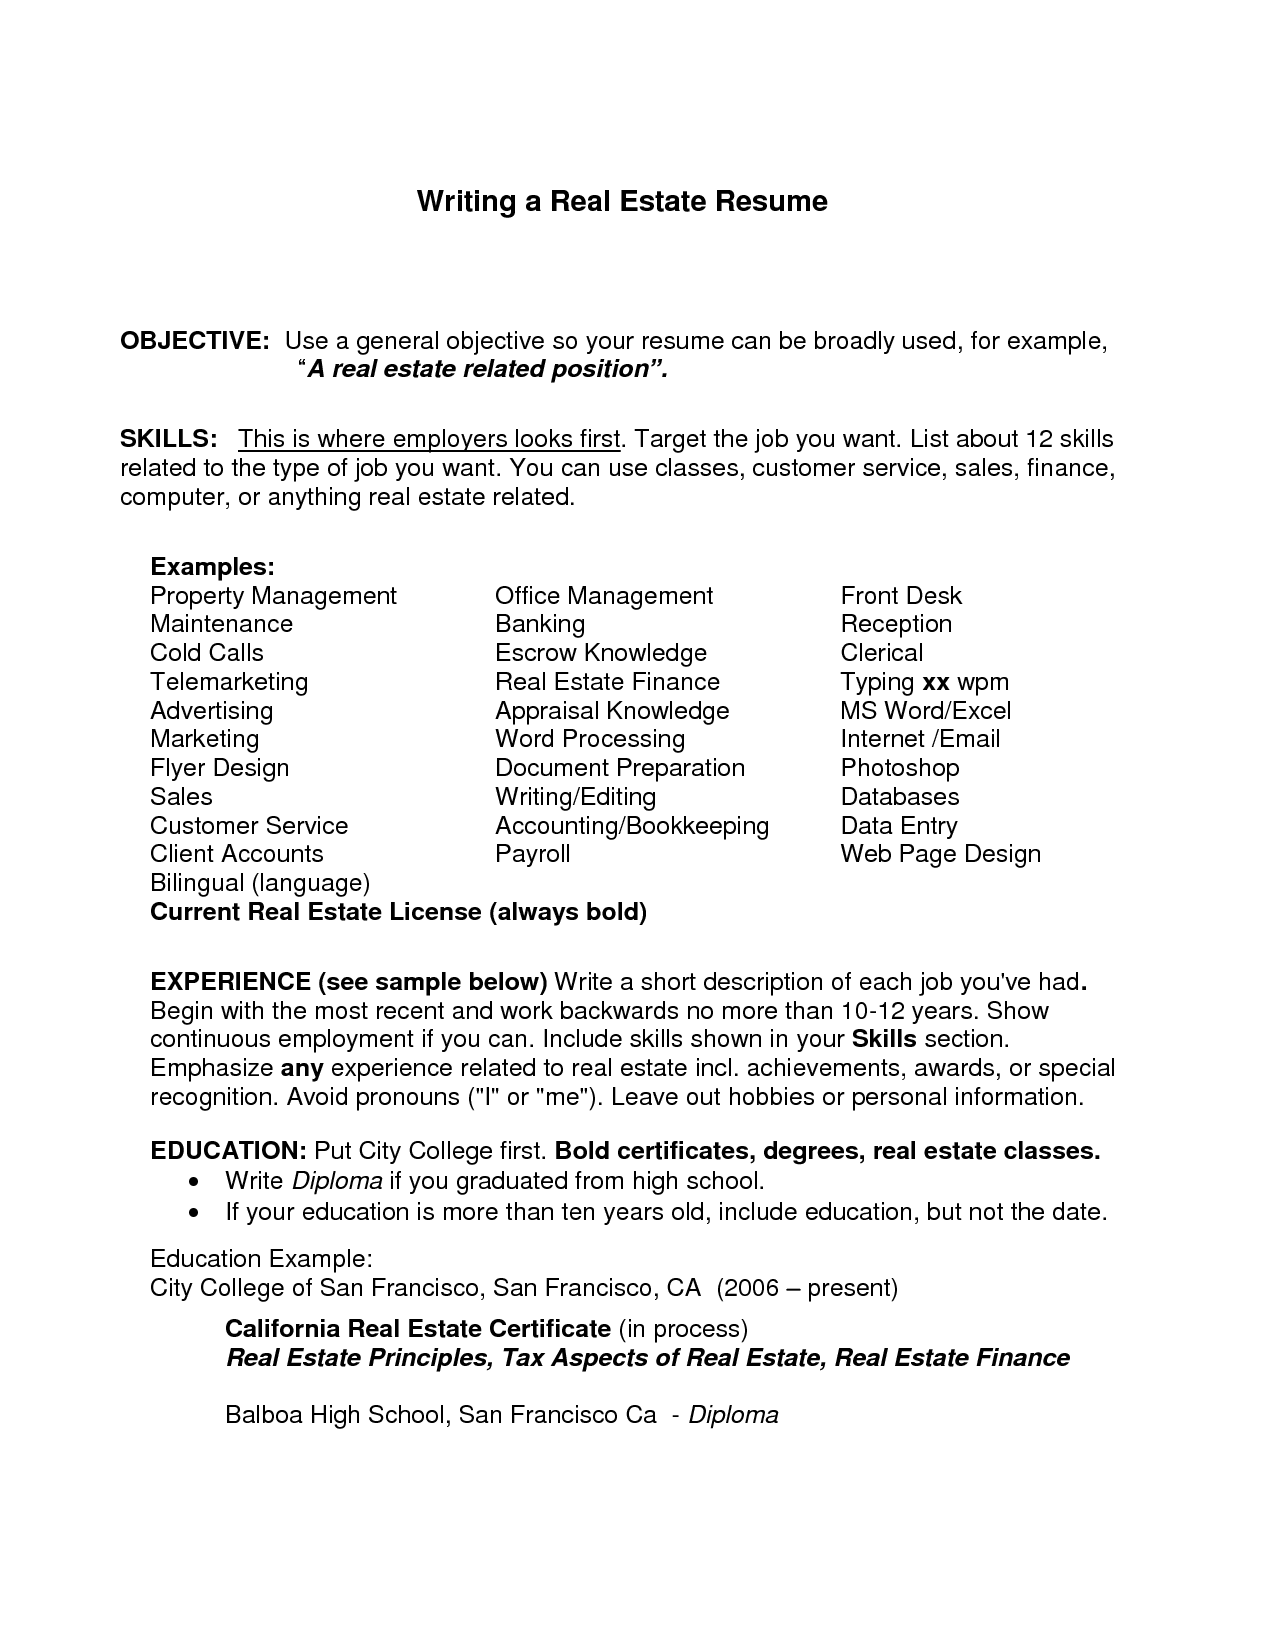 Career Objective Statement Examples Enchanting Job Objective  Resume Templates  Pinterest  Resume Objective .